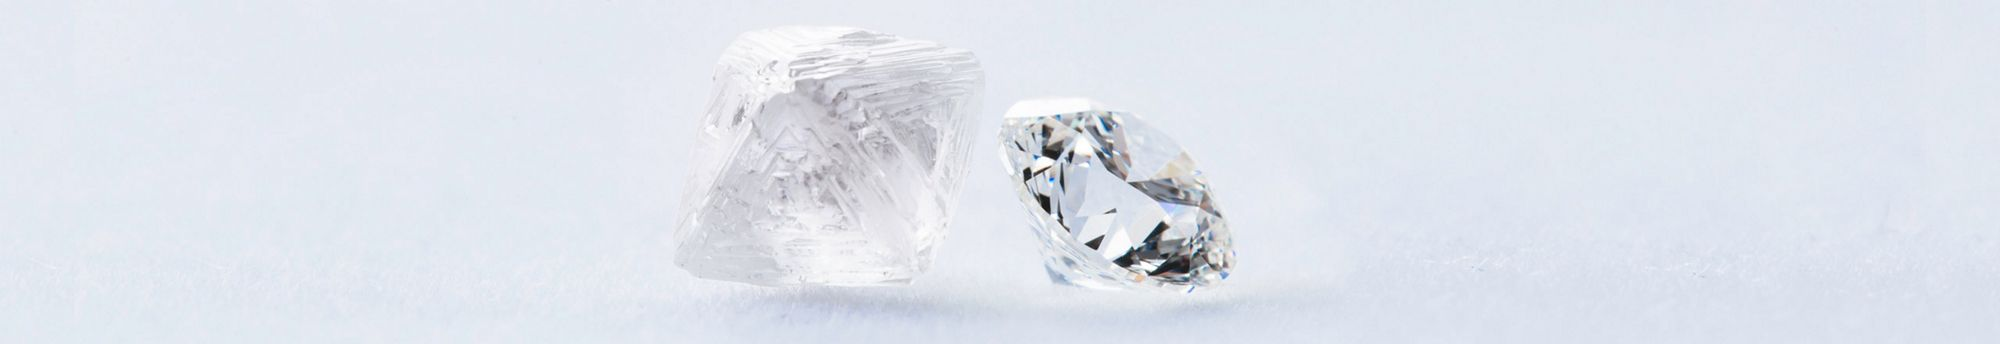 Desktop image of a rough diamond and a cut round diamond